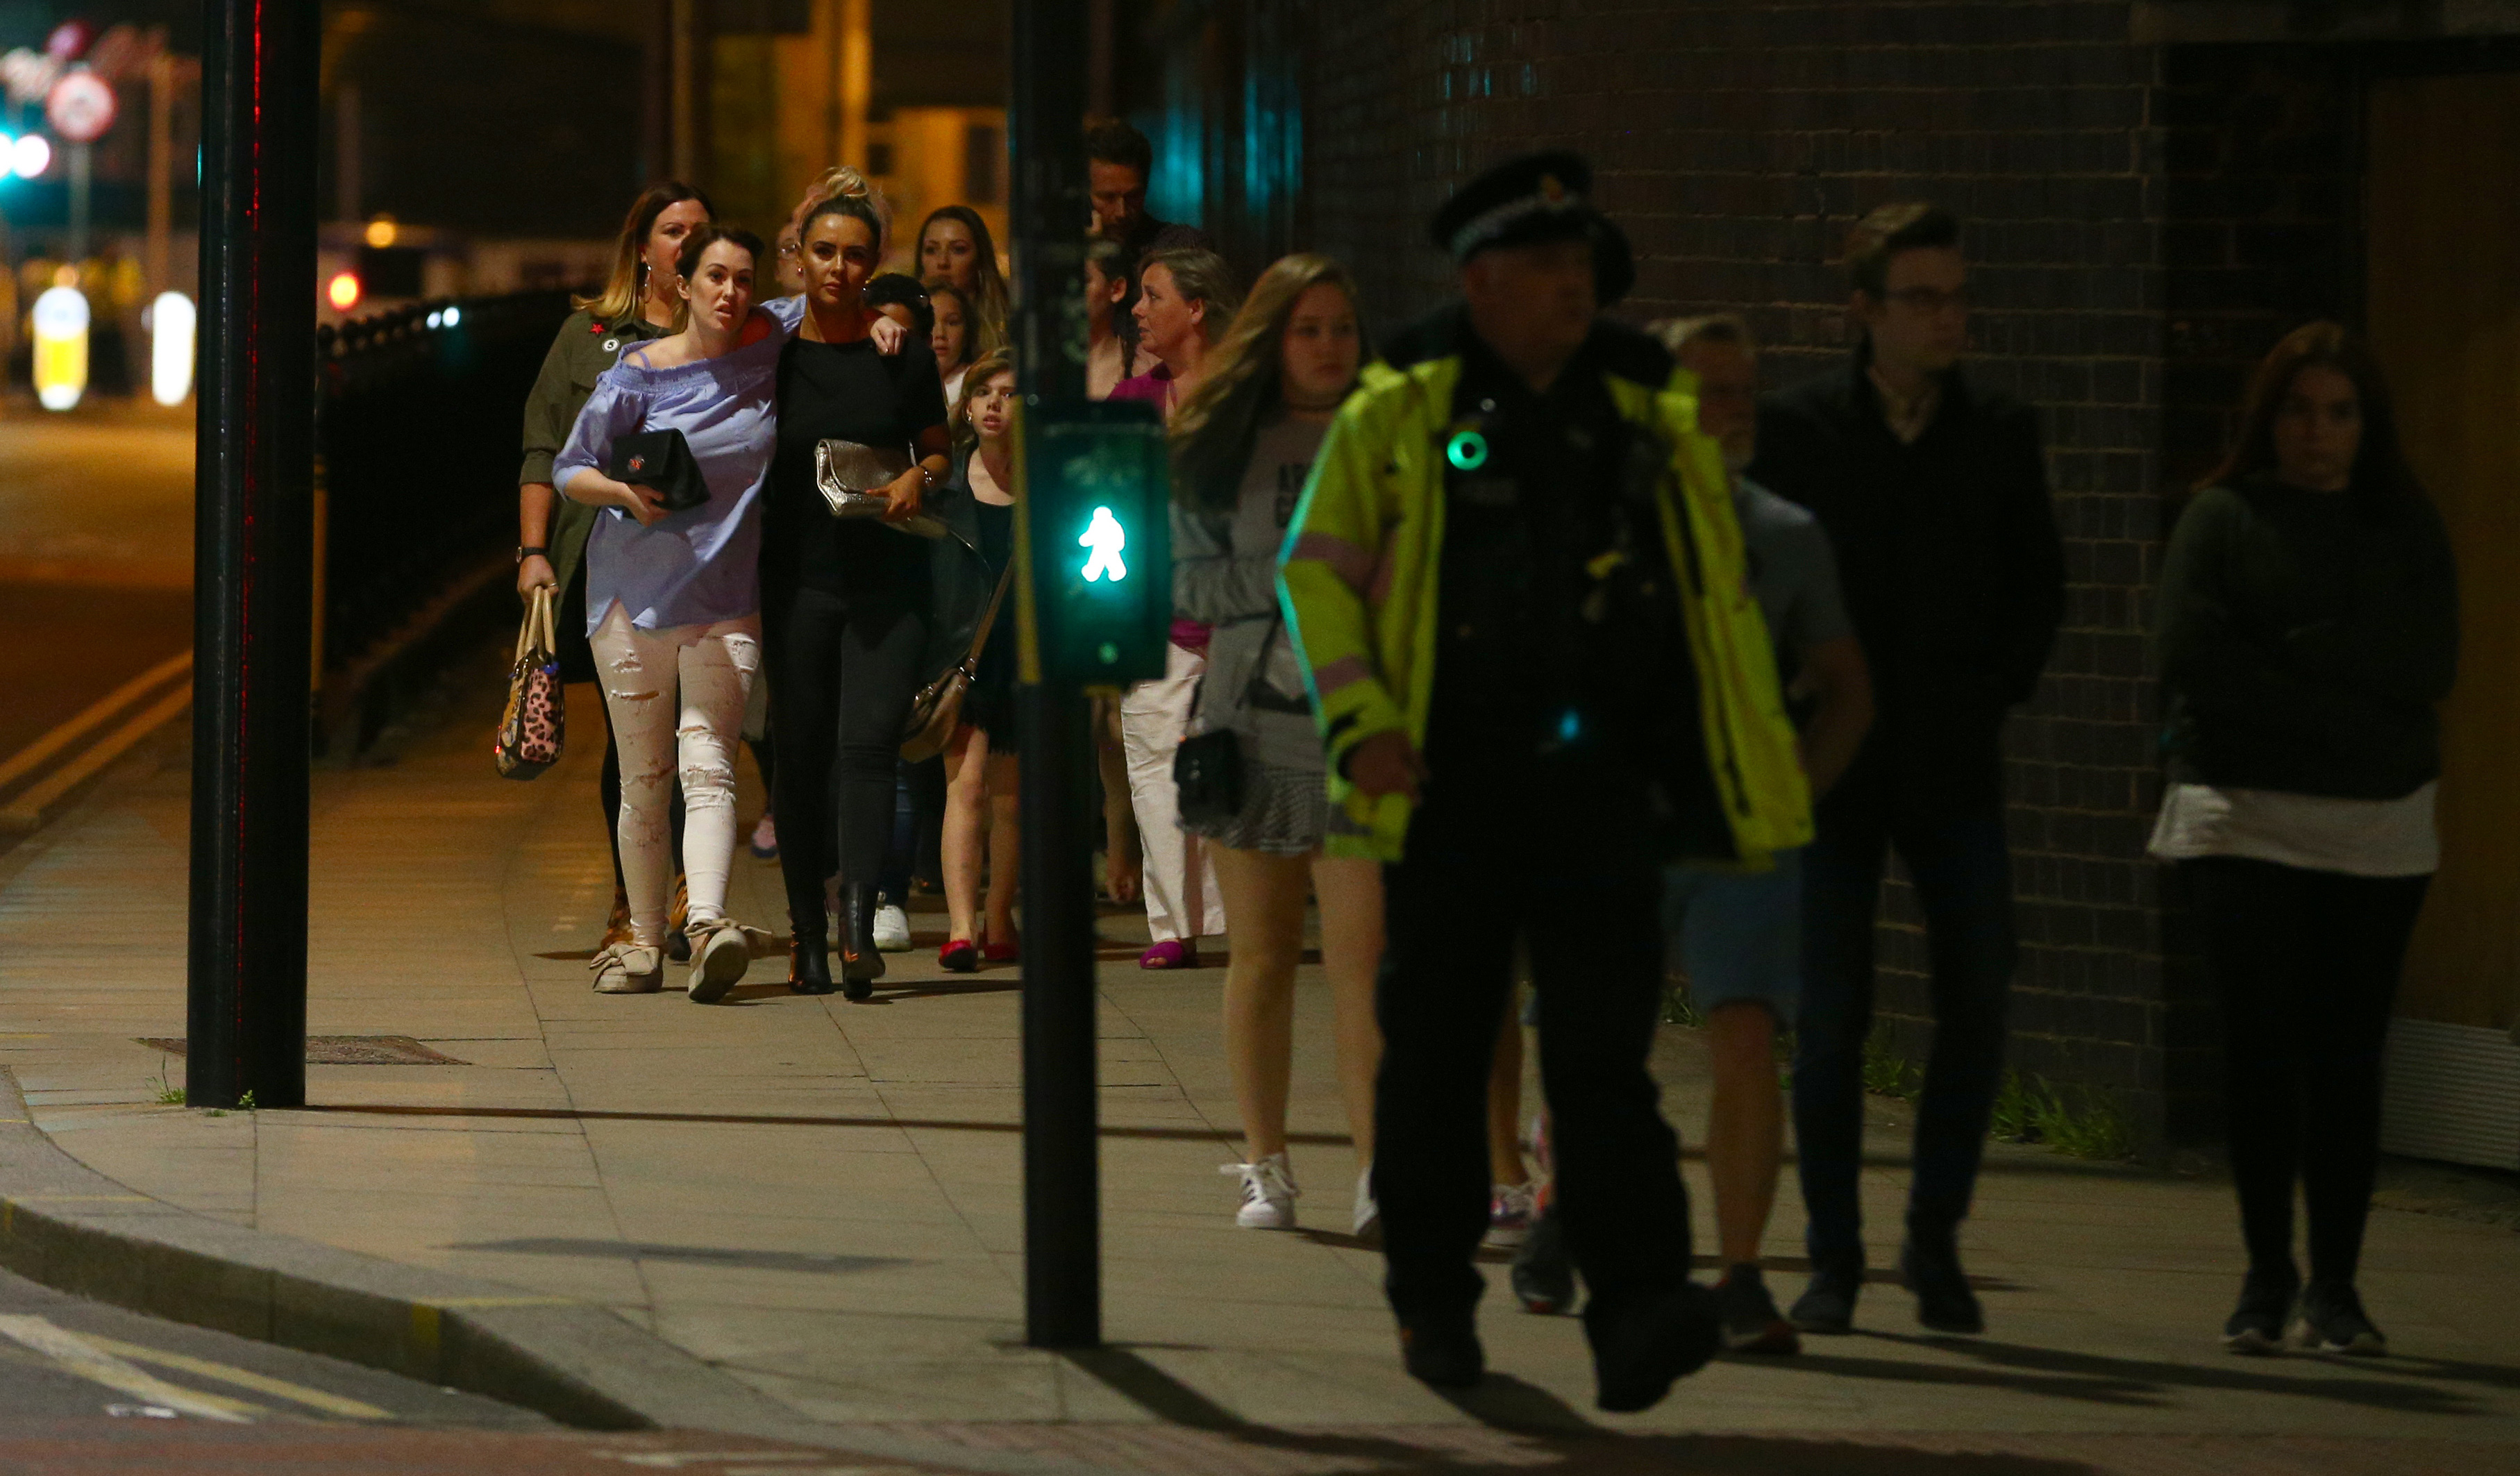 Police escort concert goers from the site of the Ariana Grande concert following a terror attack.